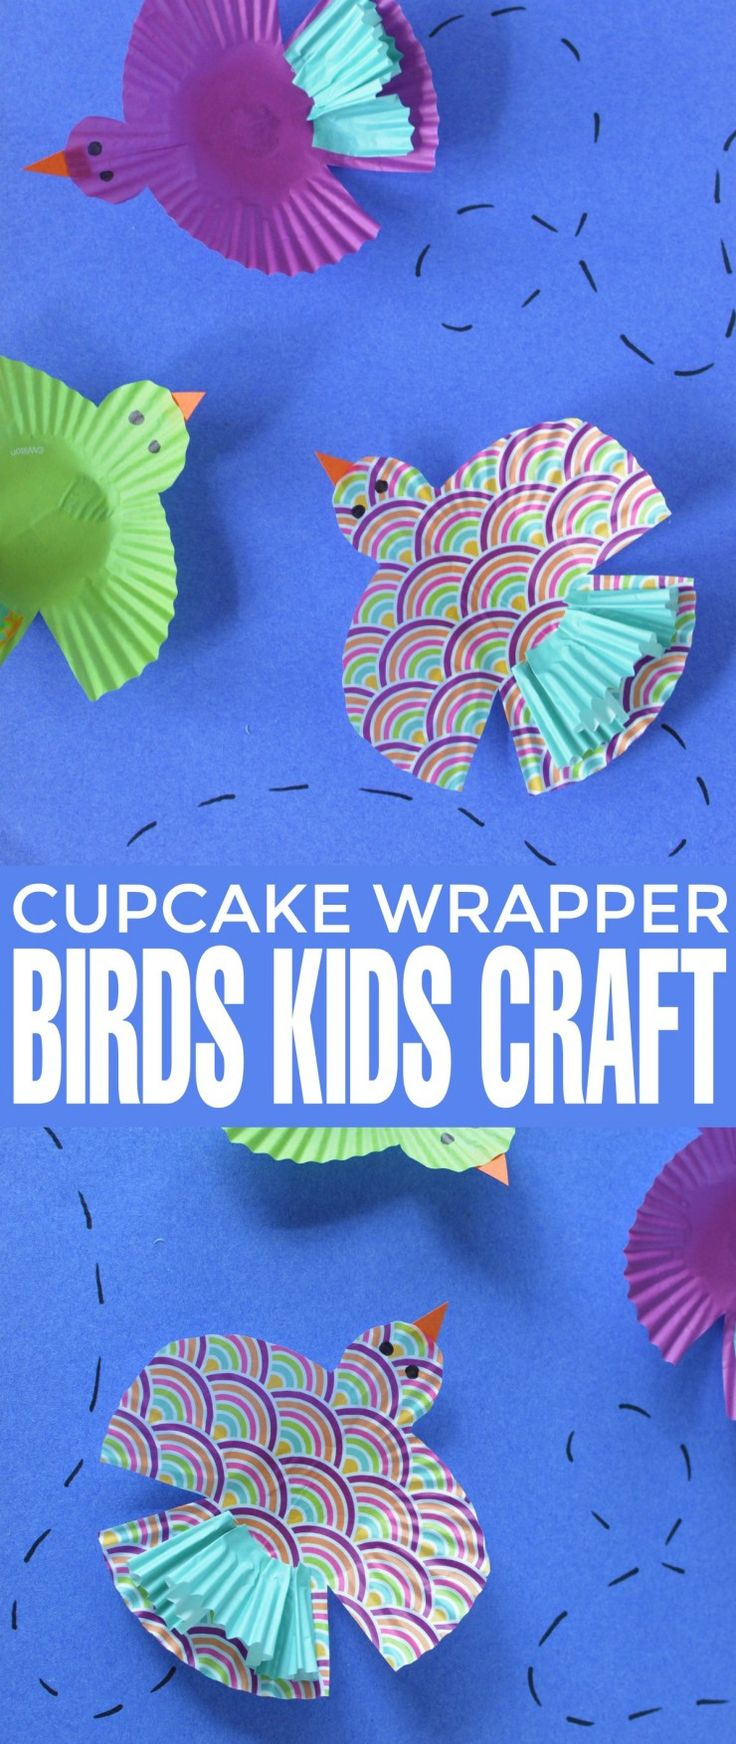 This delightful bird kids craft makes use of vibrant and fun craft materials to create a cupcake liner craft that kids will love.